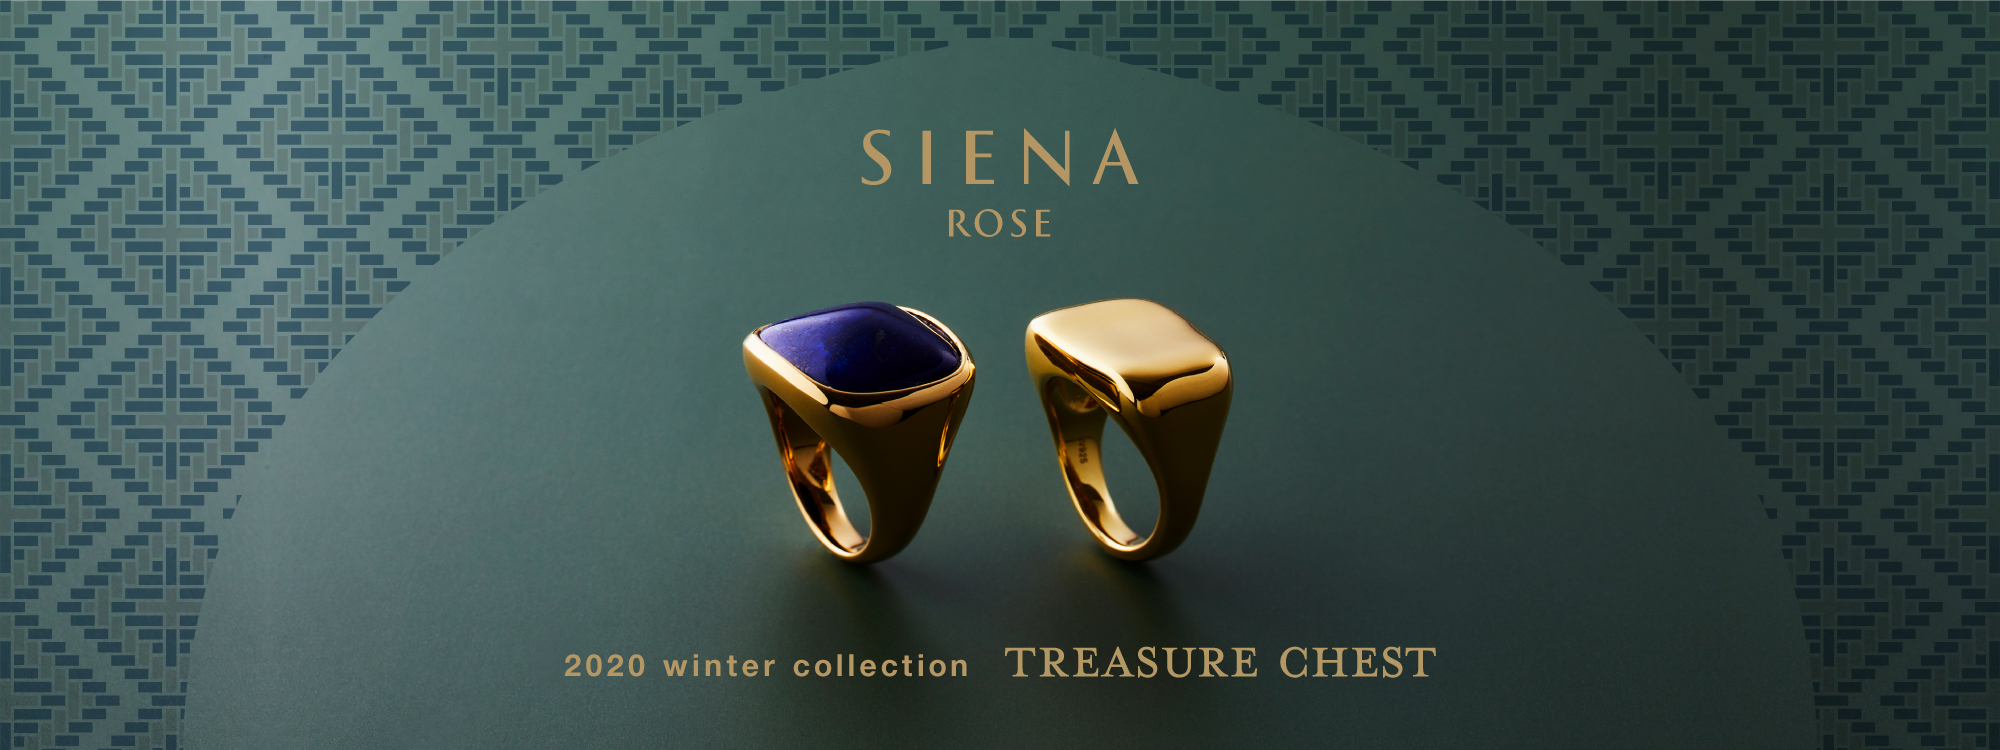 SIENA ROSE 2020 winter collection TREASURE CHEST